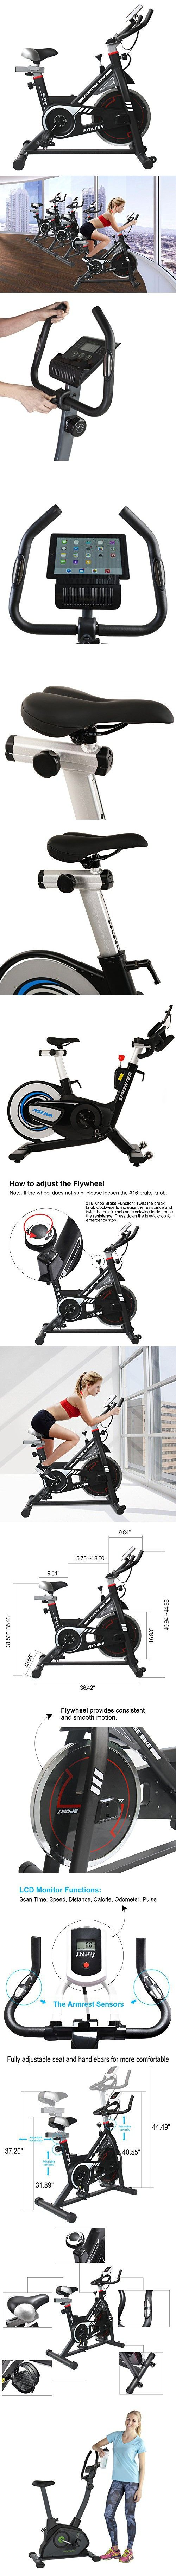 NexHT Fitness Exercise Cycle Bike (89101A) Indoor Spin Workout Cycling Bike w/LCD Monitor& Heart Pulse Sensors,Max User Weight:280lbs,Full Adjustable Health Sport Trainer Stationary Bicycle -Black